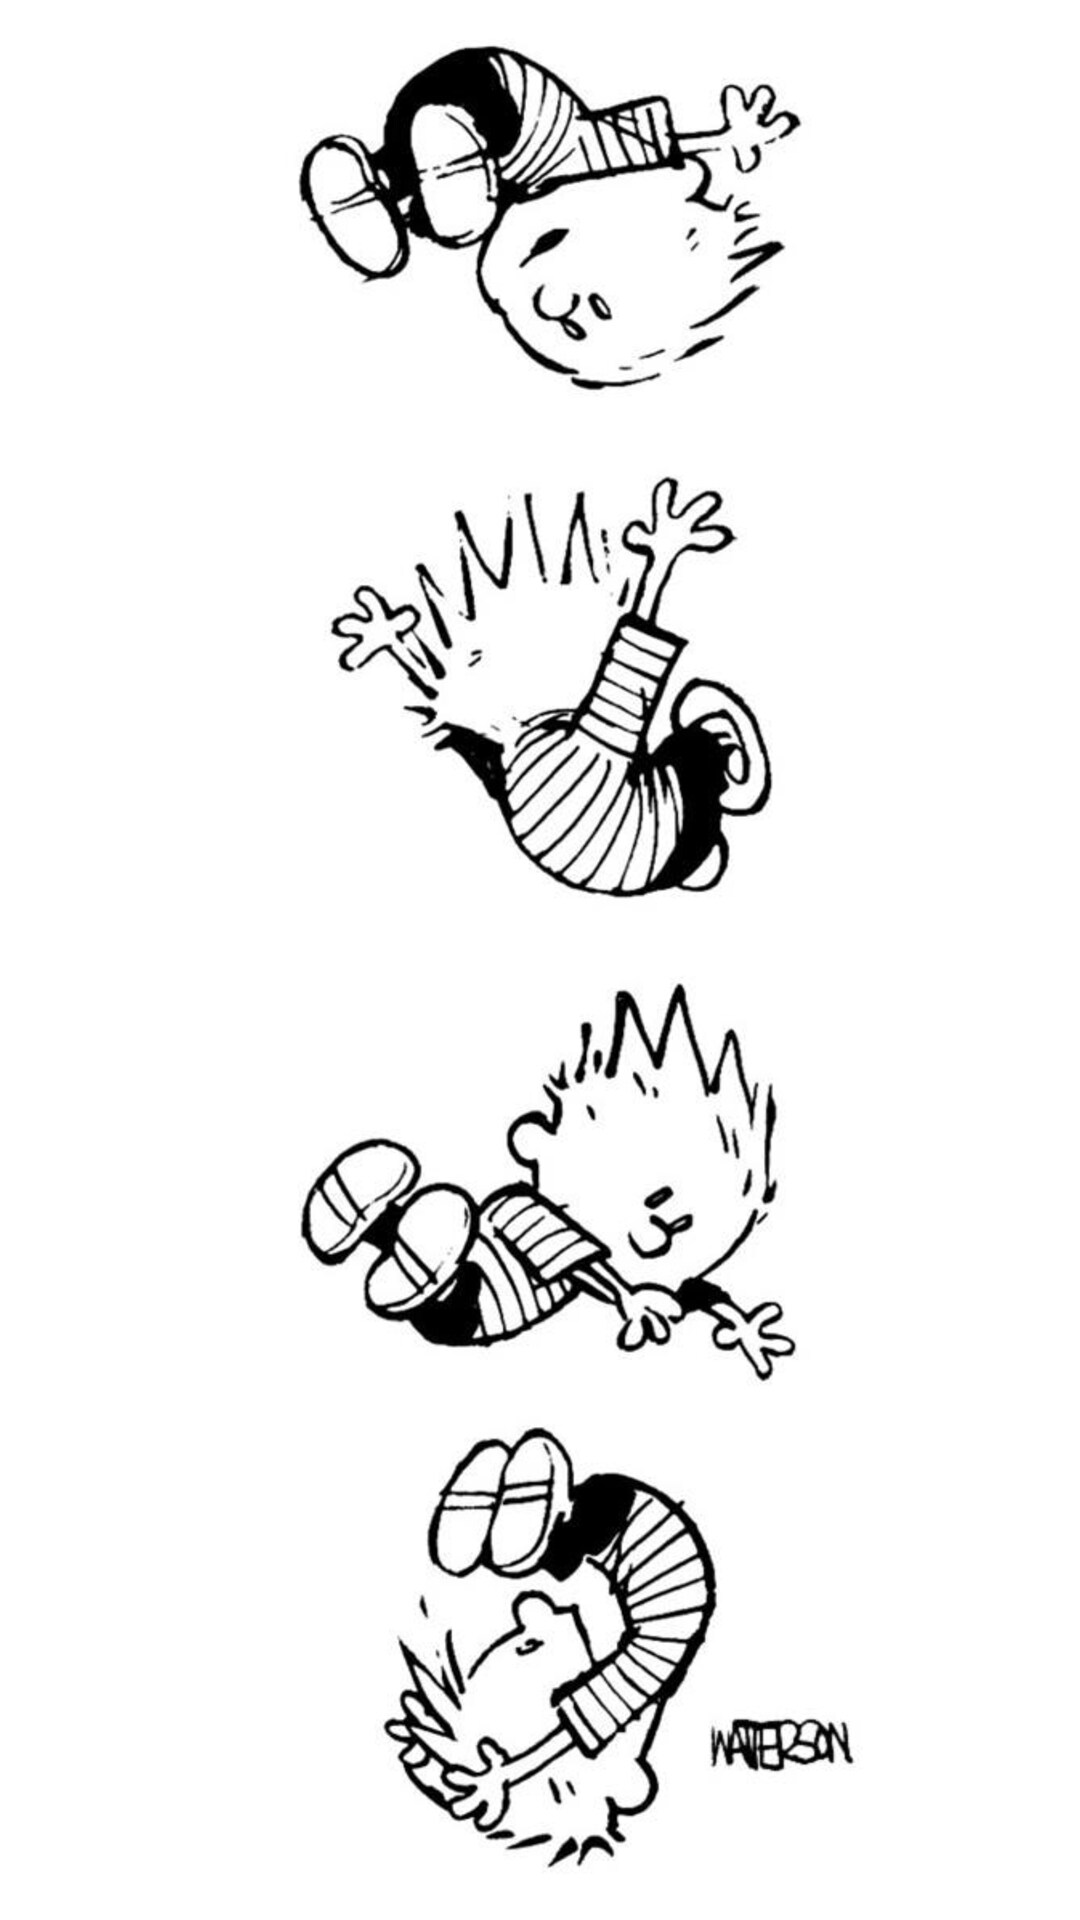 1080x1920 Calvin And Hobbes Iphone 7 6s 6 Plus Pixel Xl